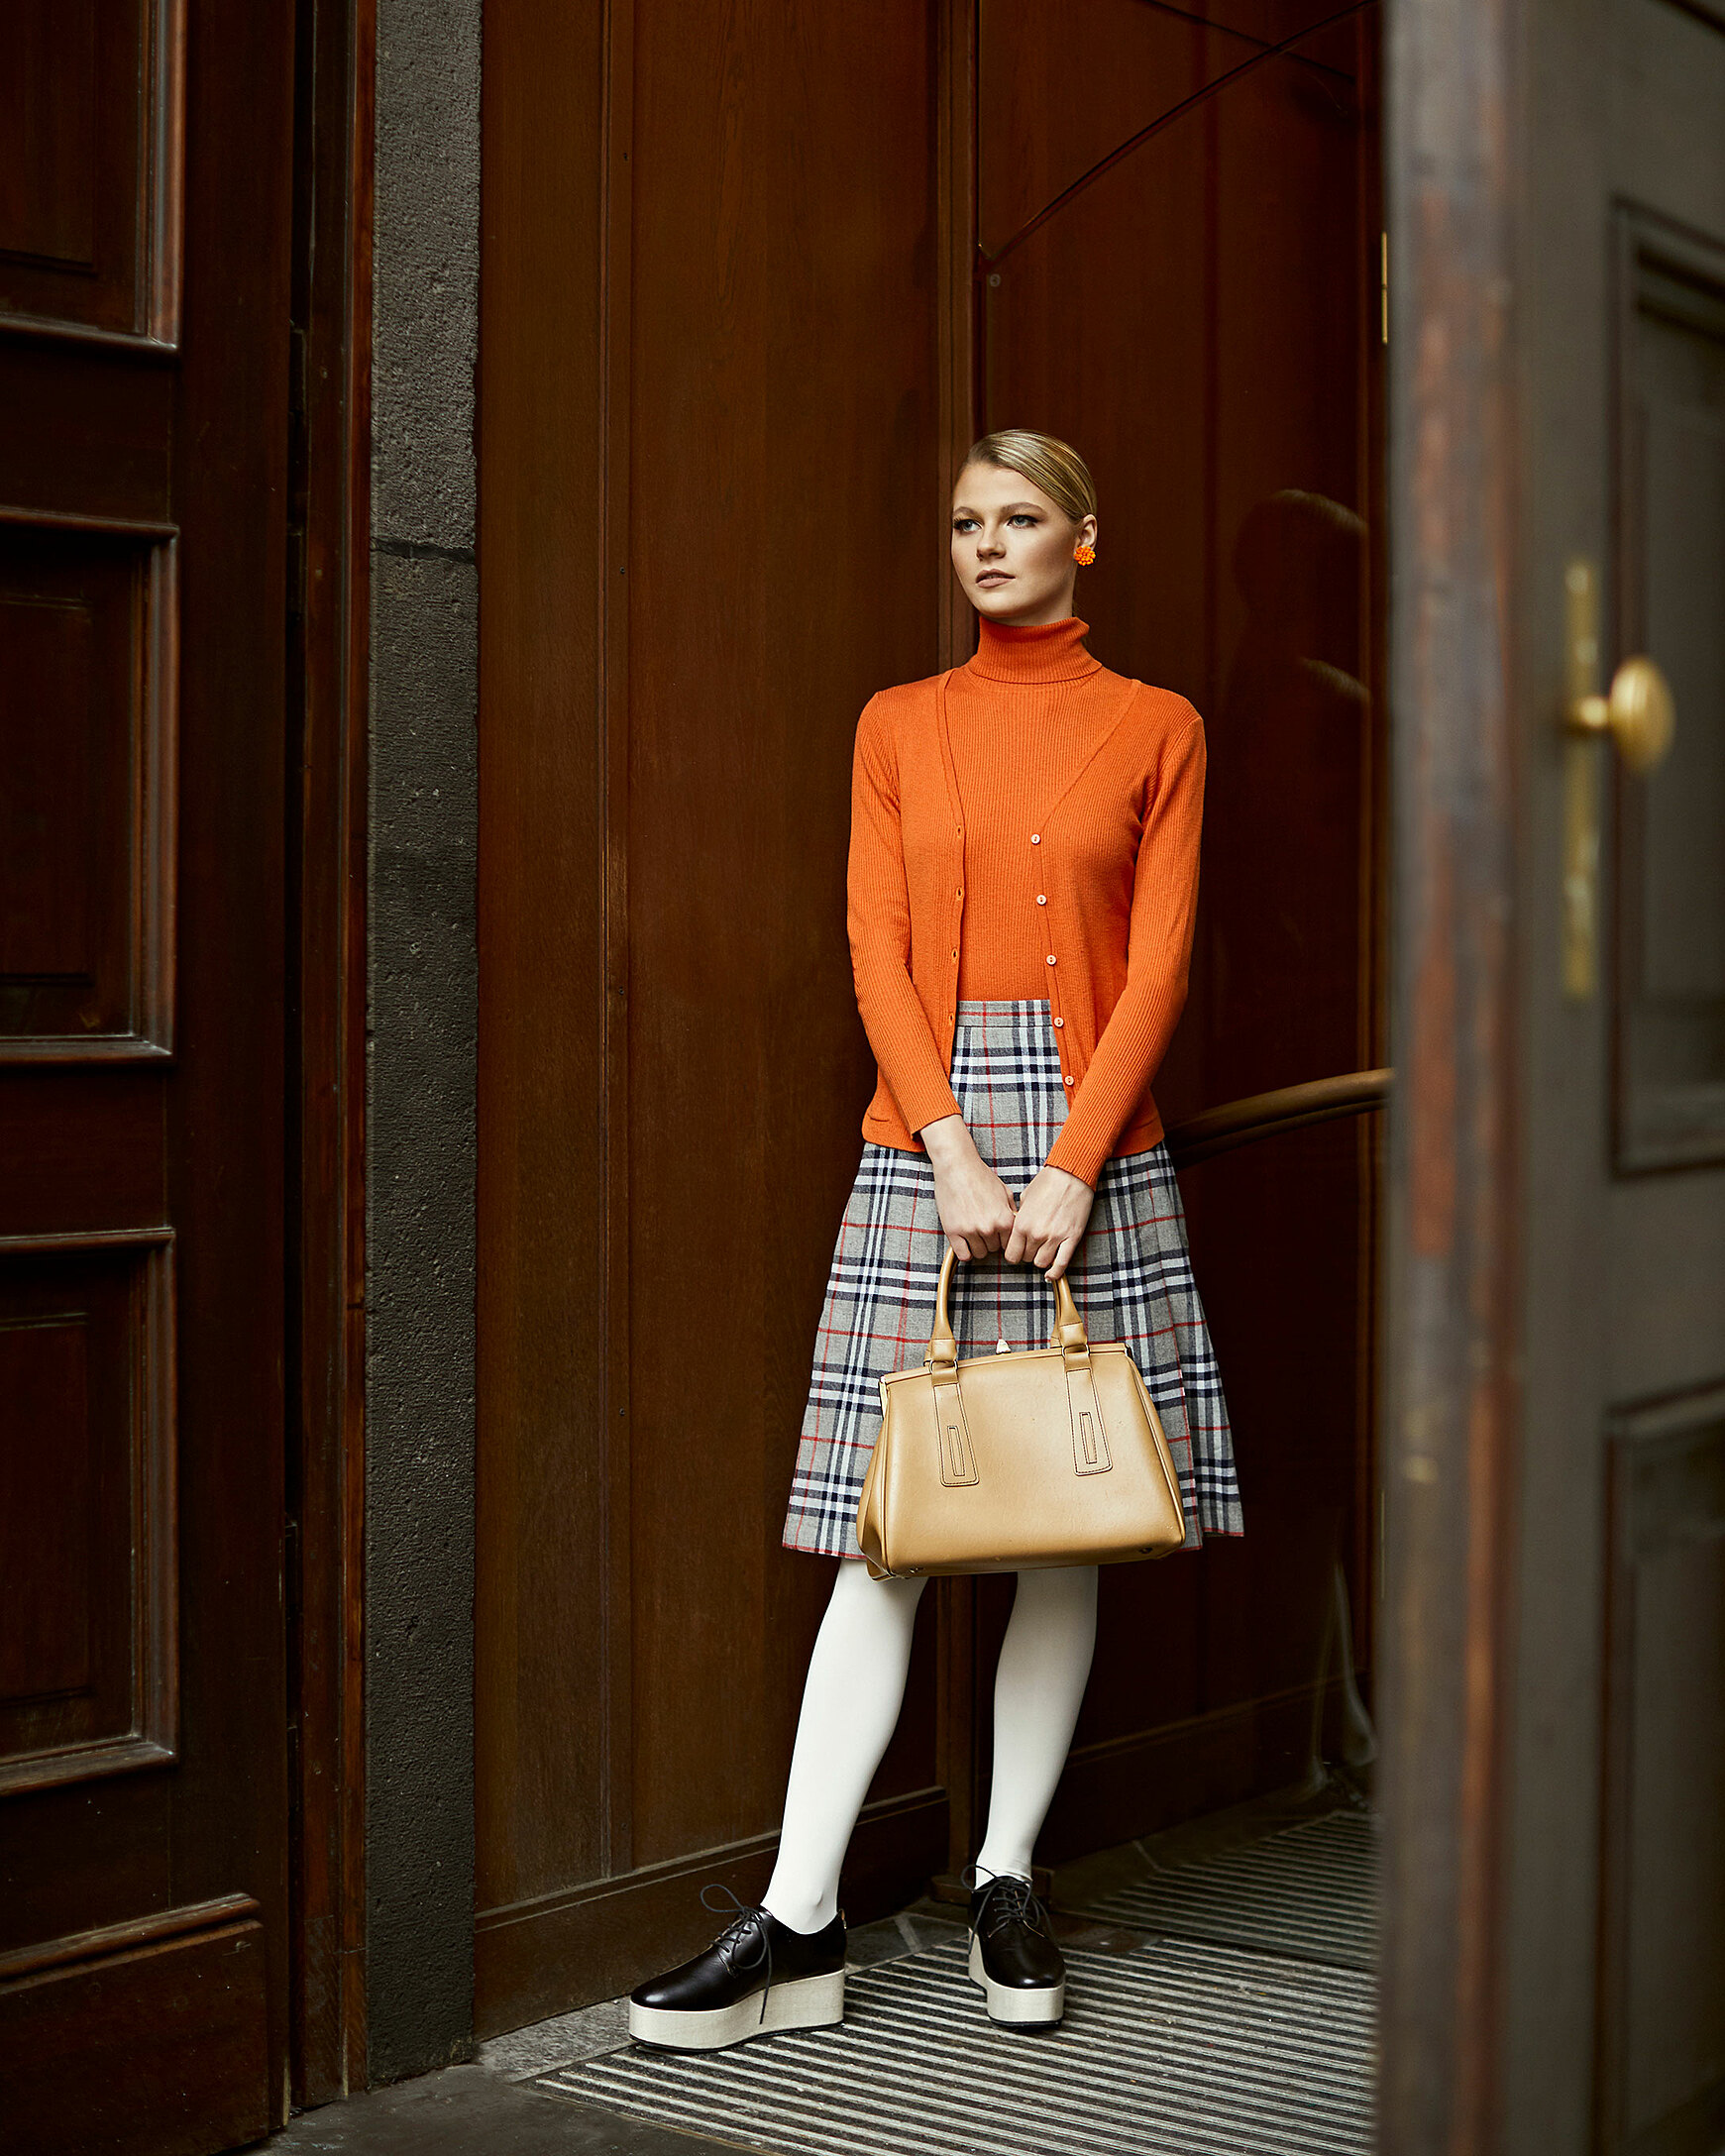 A blonde model in the entry of a church with brown doors. The model wears an orange pullover and a similar colored cardigan. Big orange ear clips and a nude colored handbag. She wears it like a quite shy person in a long skirt and white tights in black plateau shoes